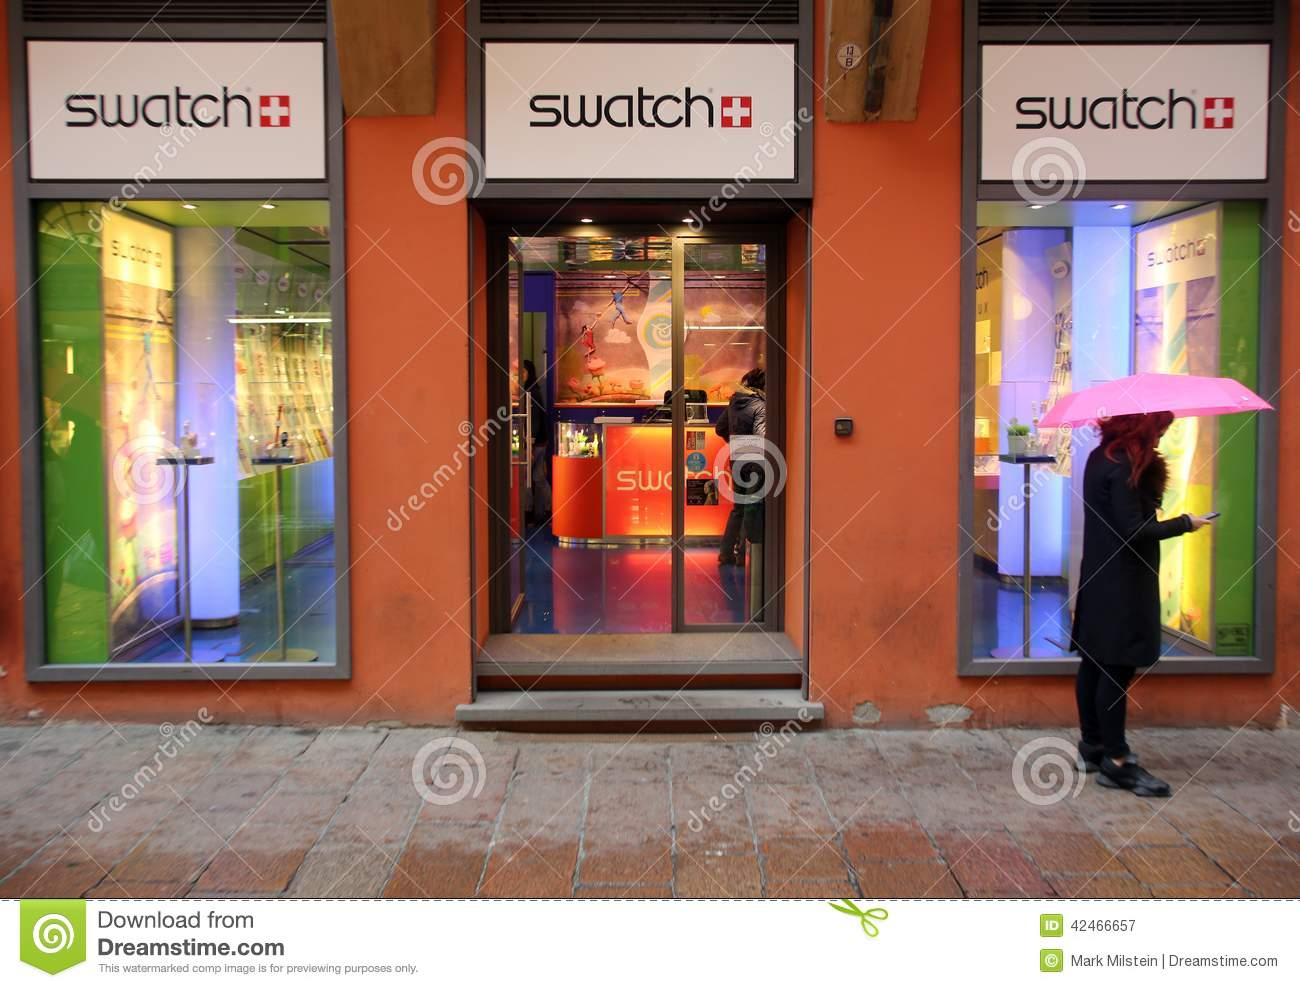 SWATCH WATCH RETAIL OUTLET Editorial Photography - Image: 42466657